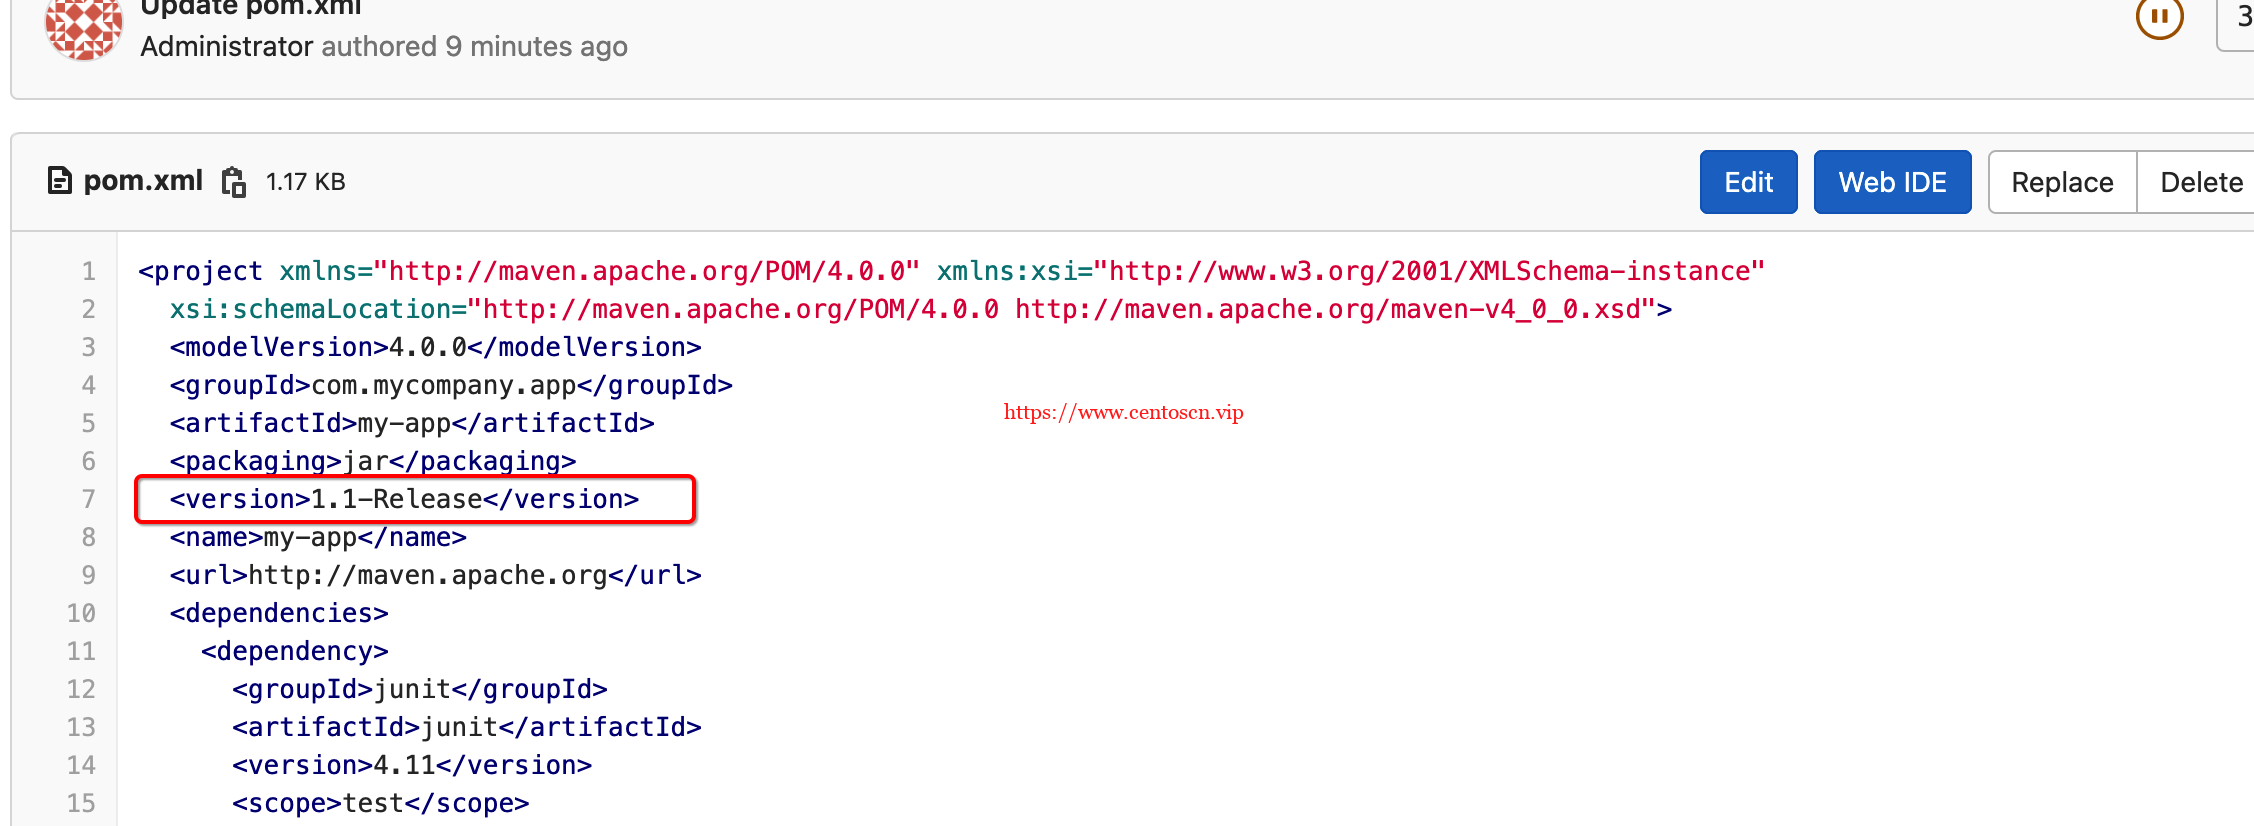 400 Repository version policy: RELEASE does not allow metadata in path